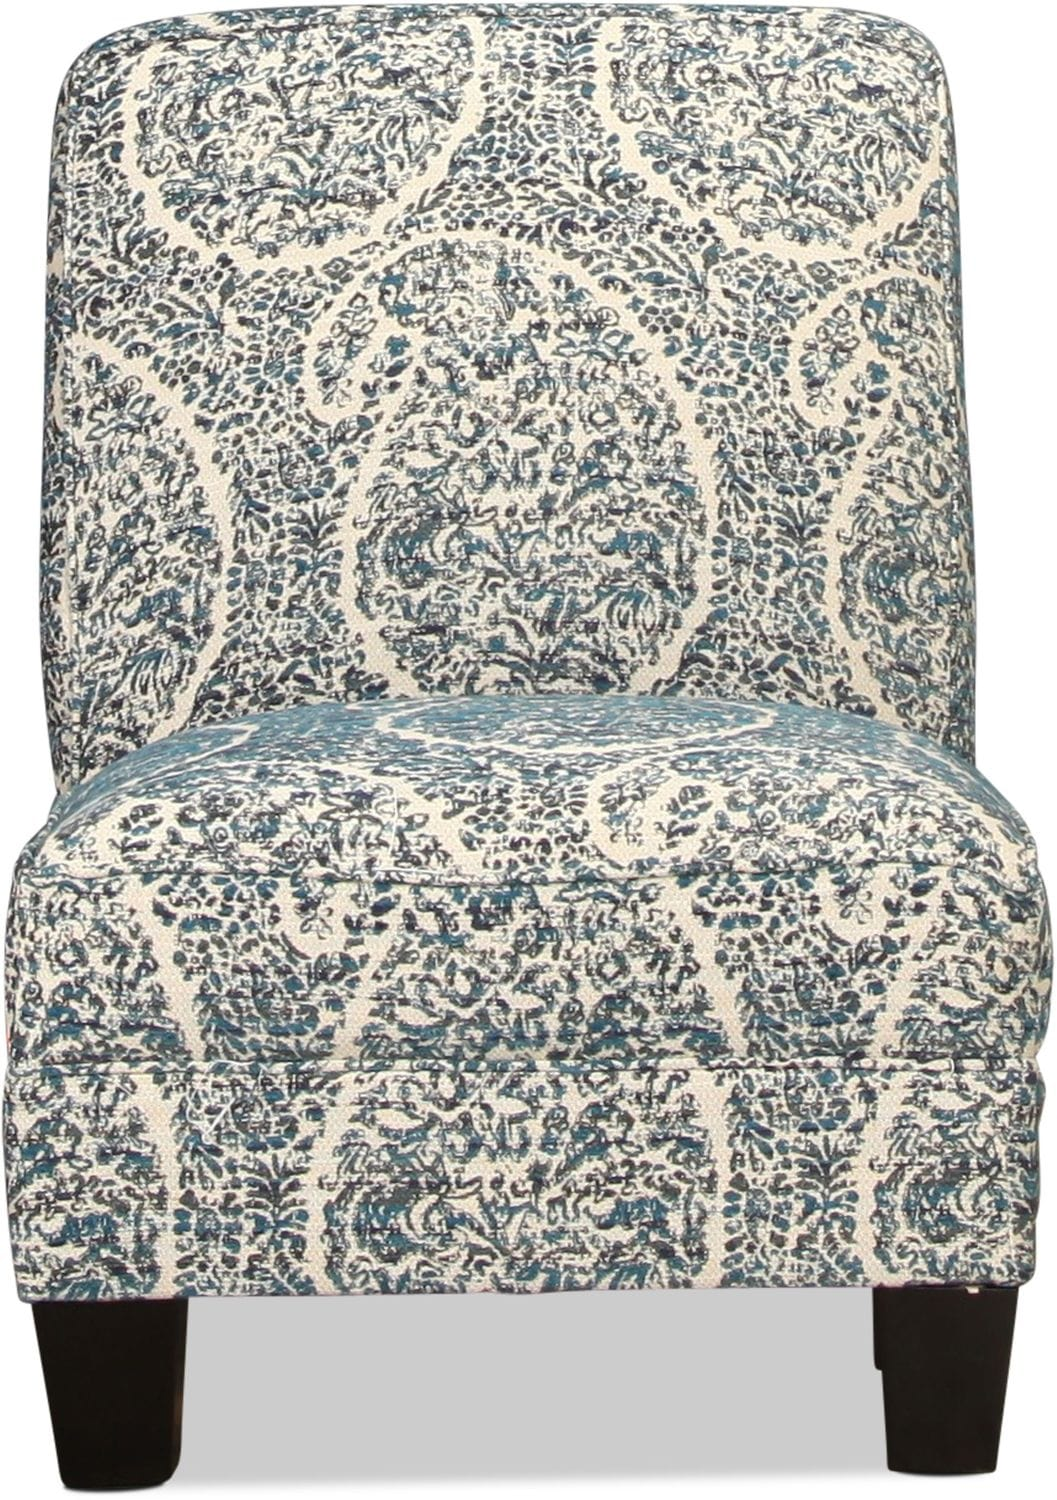 Sawyer Accent Chair - Paisley